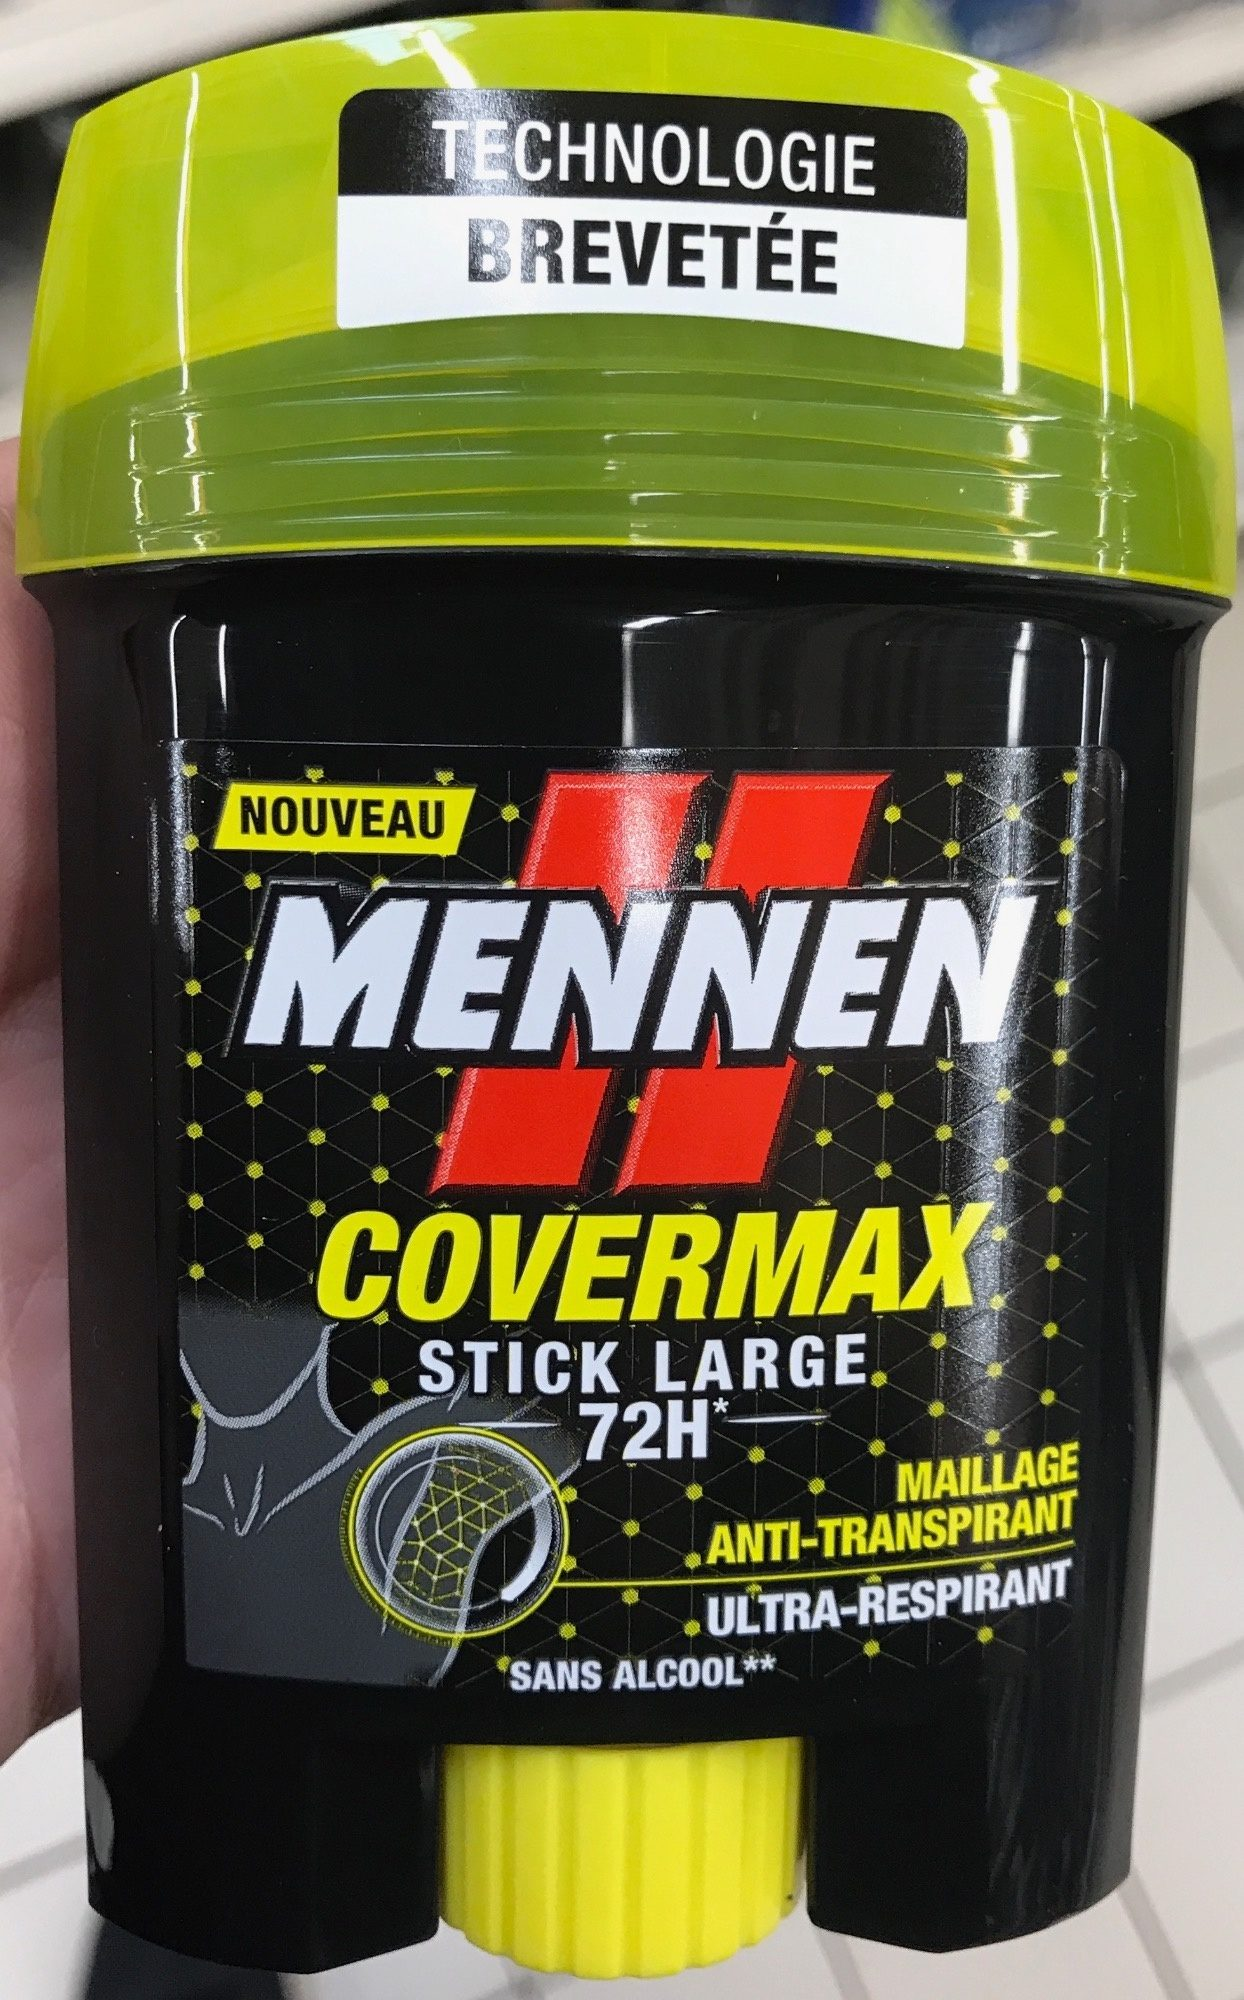 Covermax Stick large 72H - Produit - fr